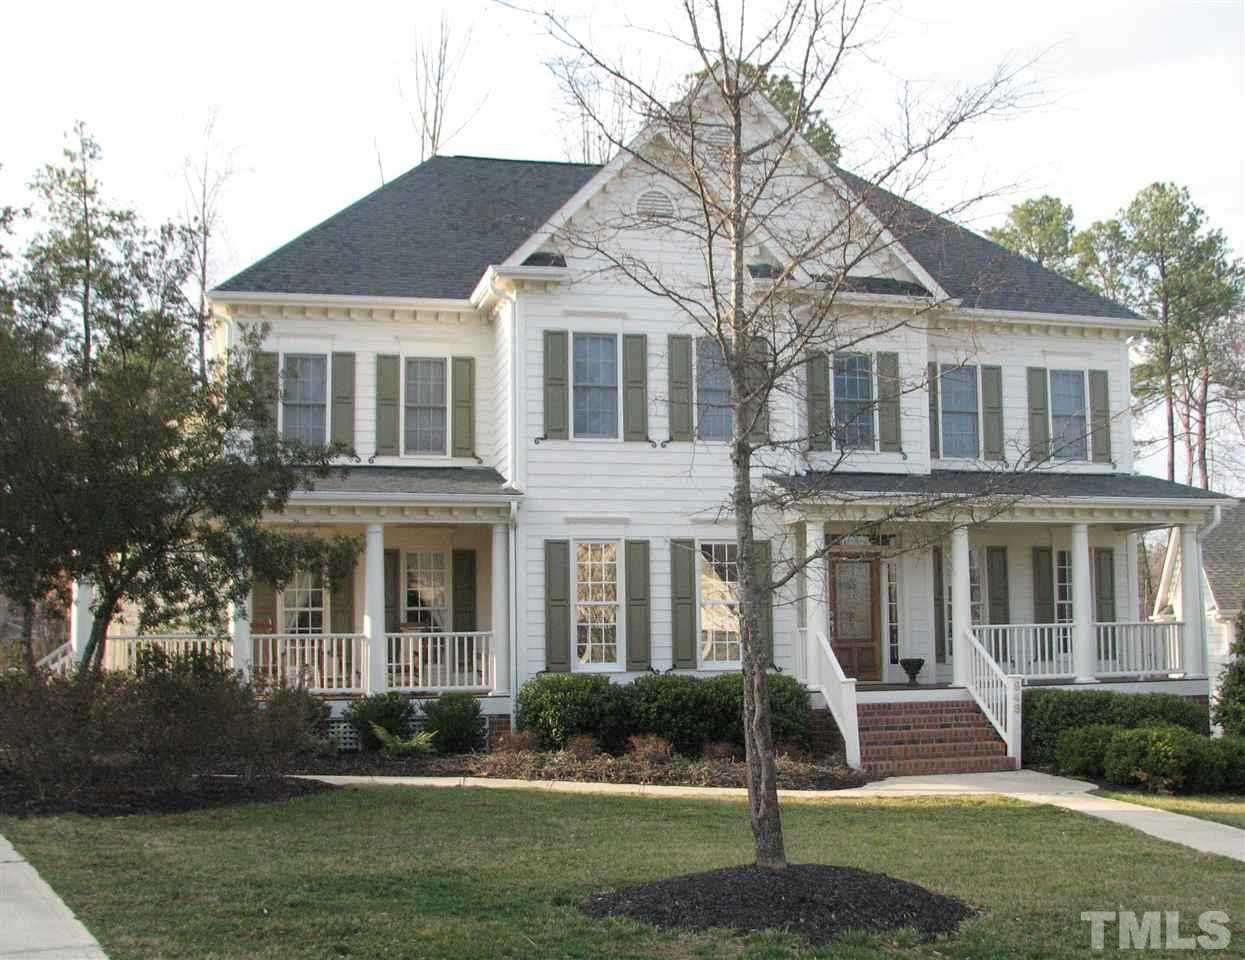 $3,250 - 5Br/5Ba -  for Sale in Cary Park, Cary